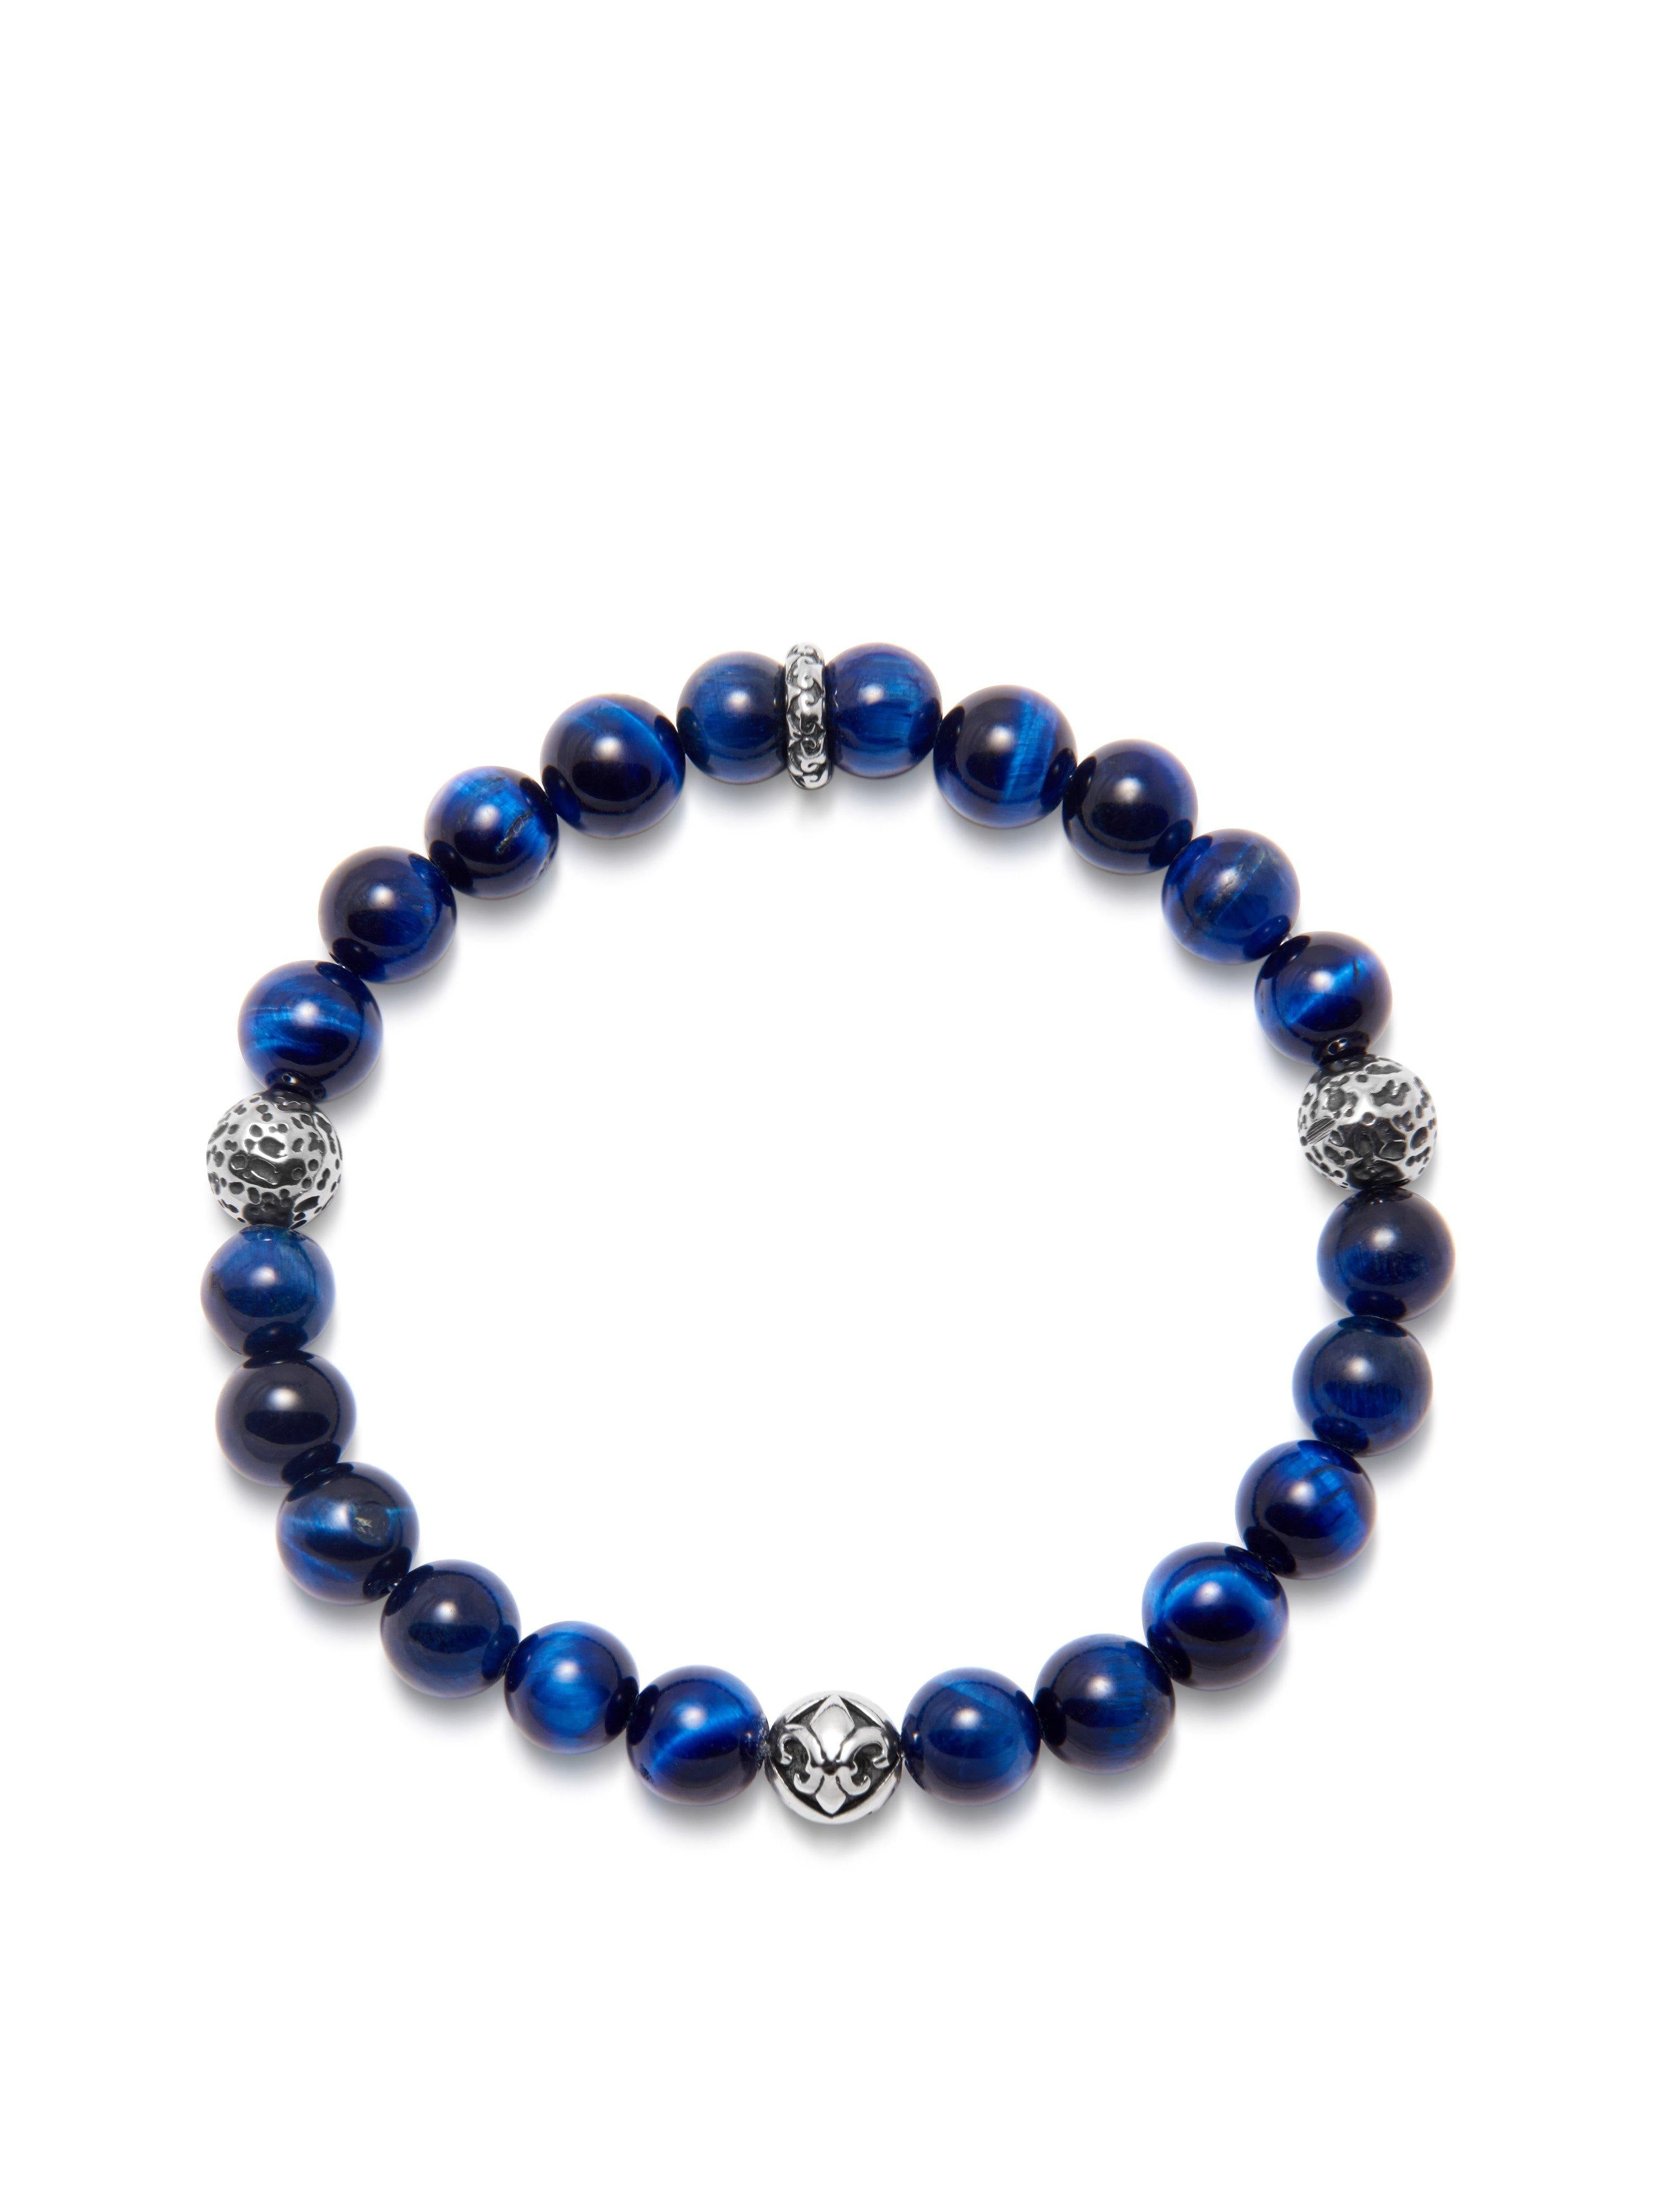 Men's Wristband with Blue Tiger Eye and Silver